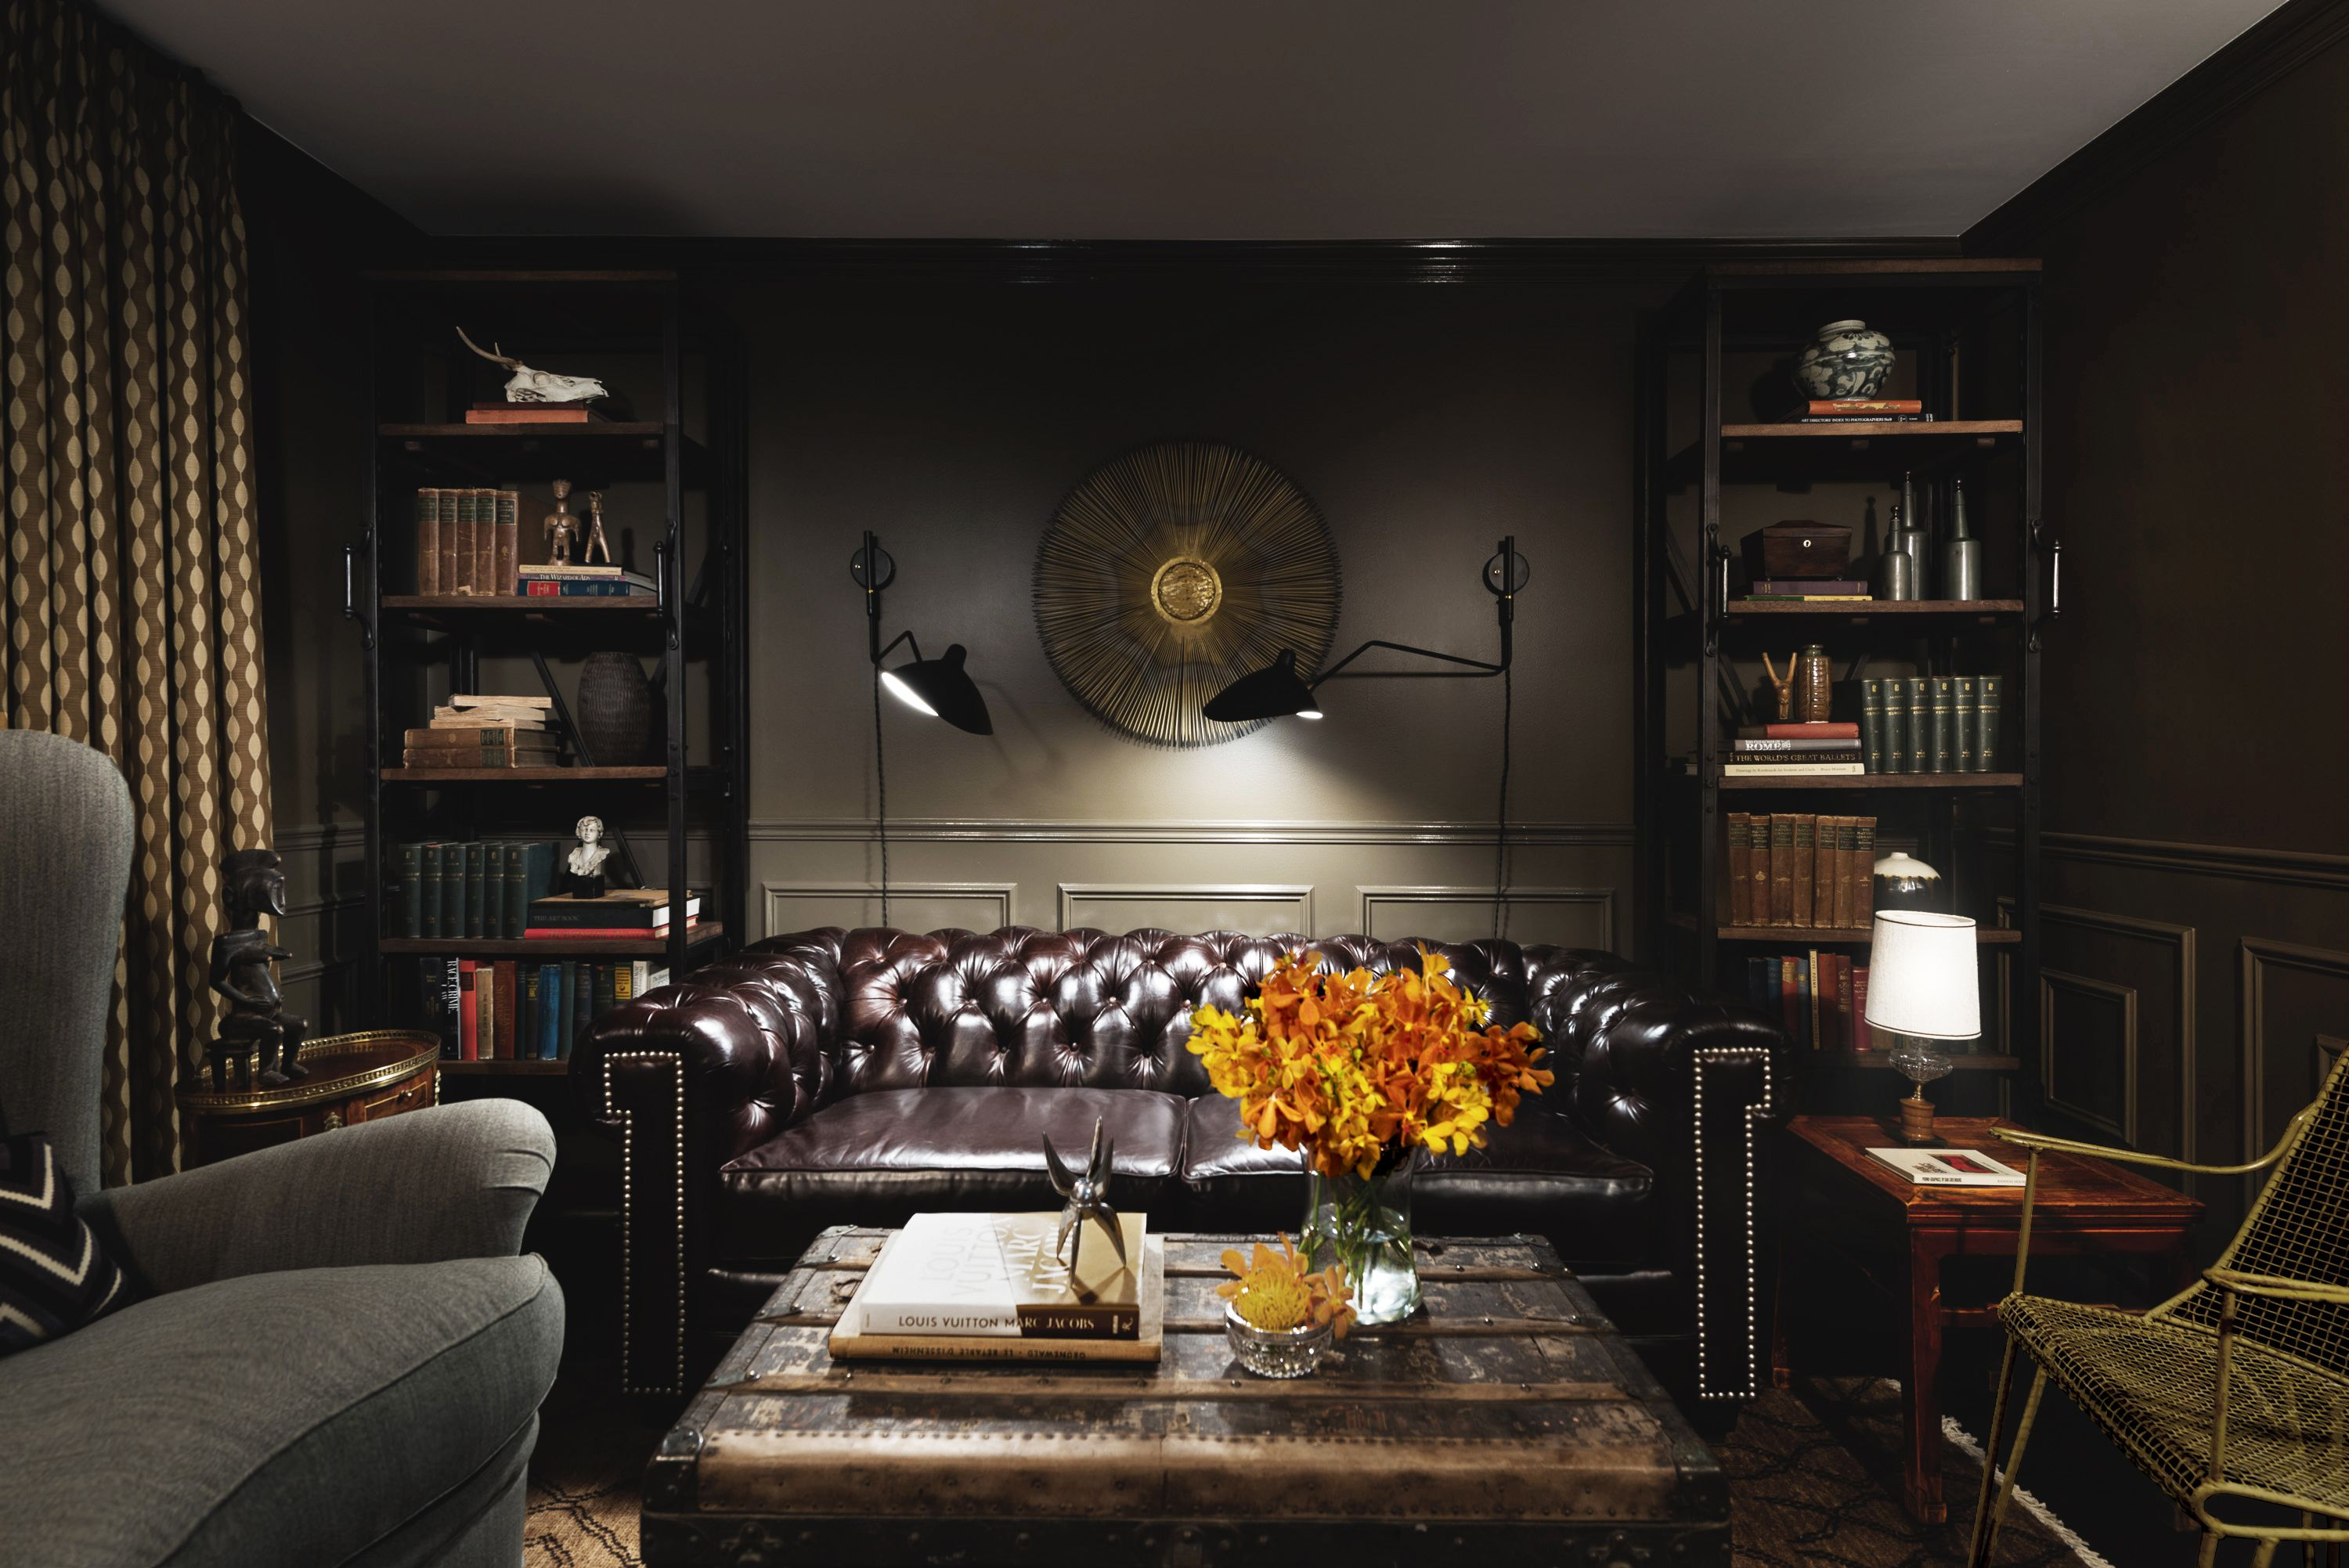 Stephen Young Design | Gold Coast, Chicago | Study | Photography by Daniel Kelleghan